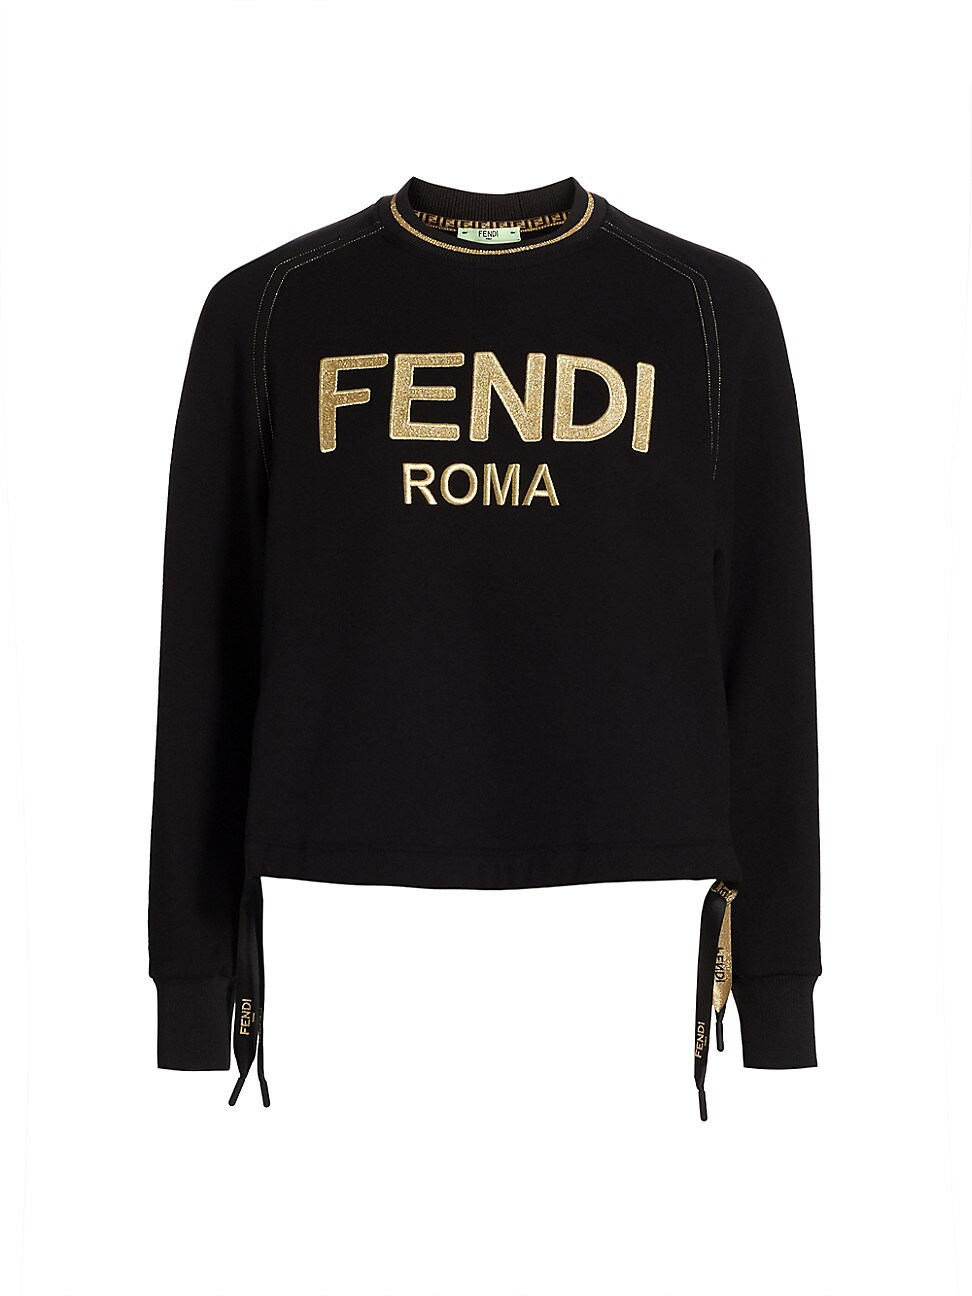 Fendi WOMEN'S LOGO BOW CREWNECK SWEATSHIRT